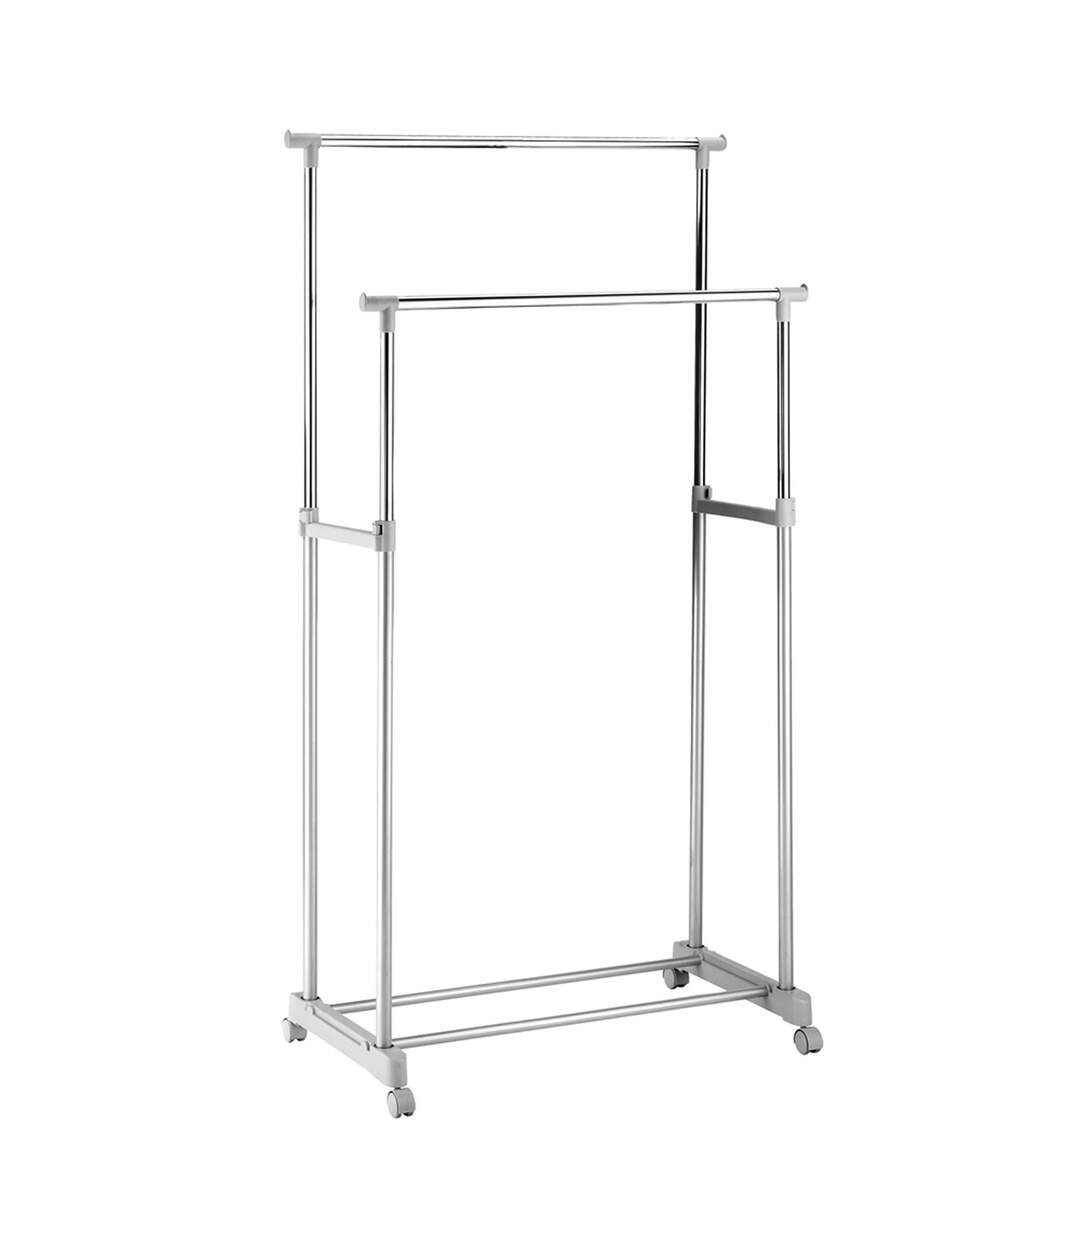 Portant-vêtement double barre Idebox - 167 x 84 x 42 cm - Métal